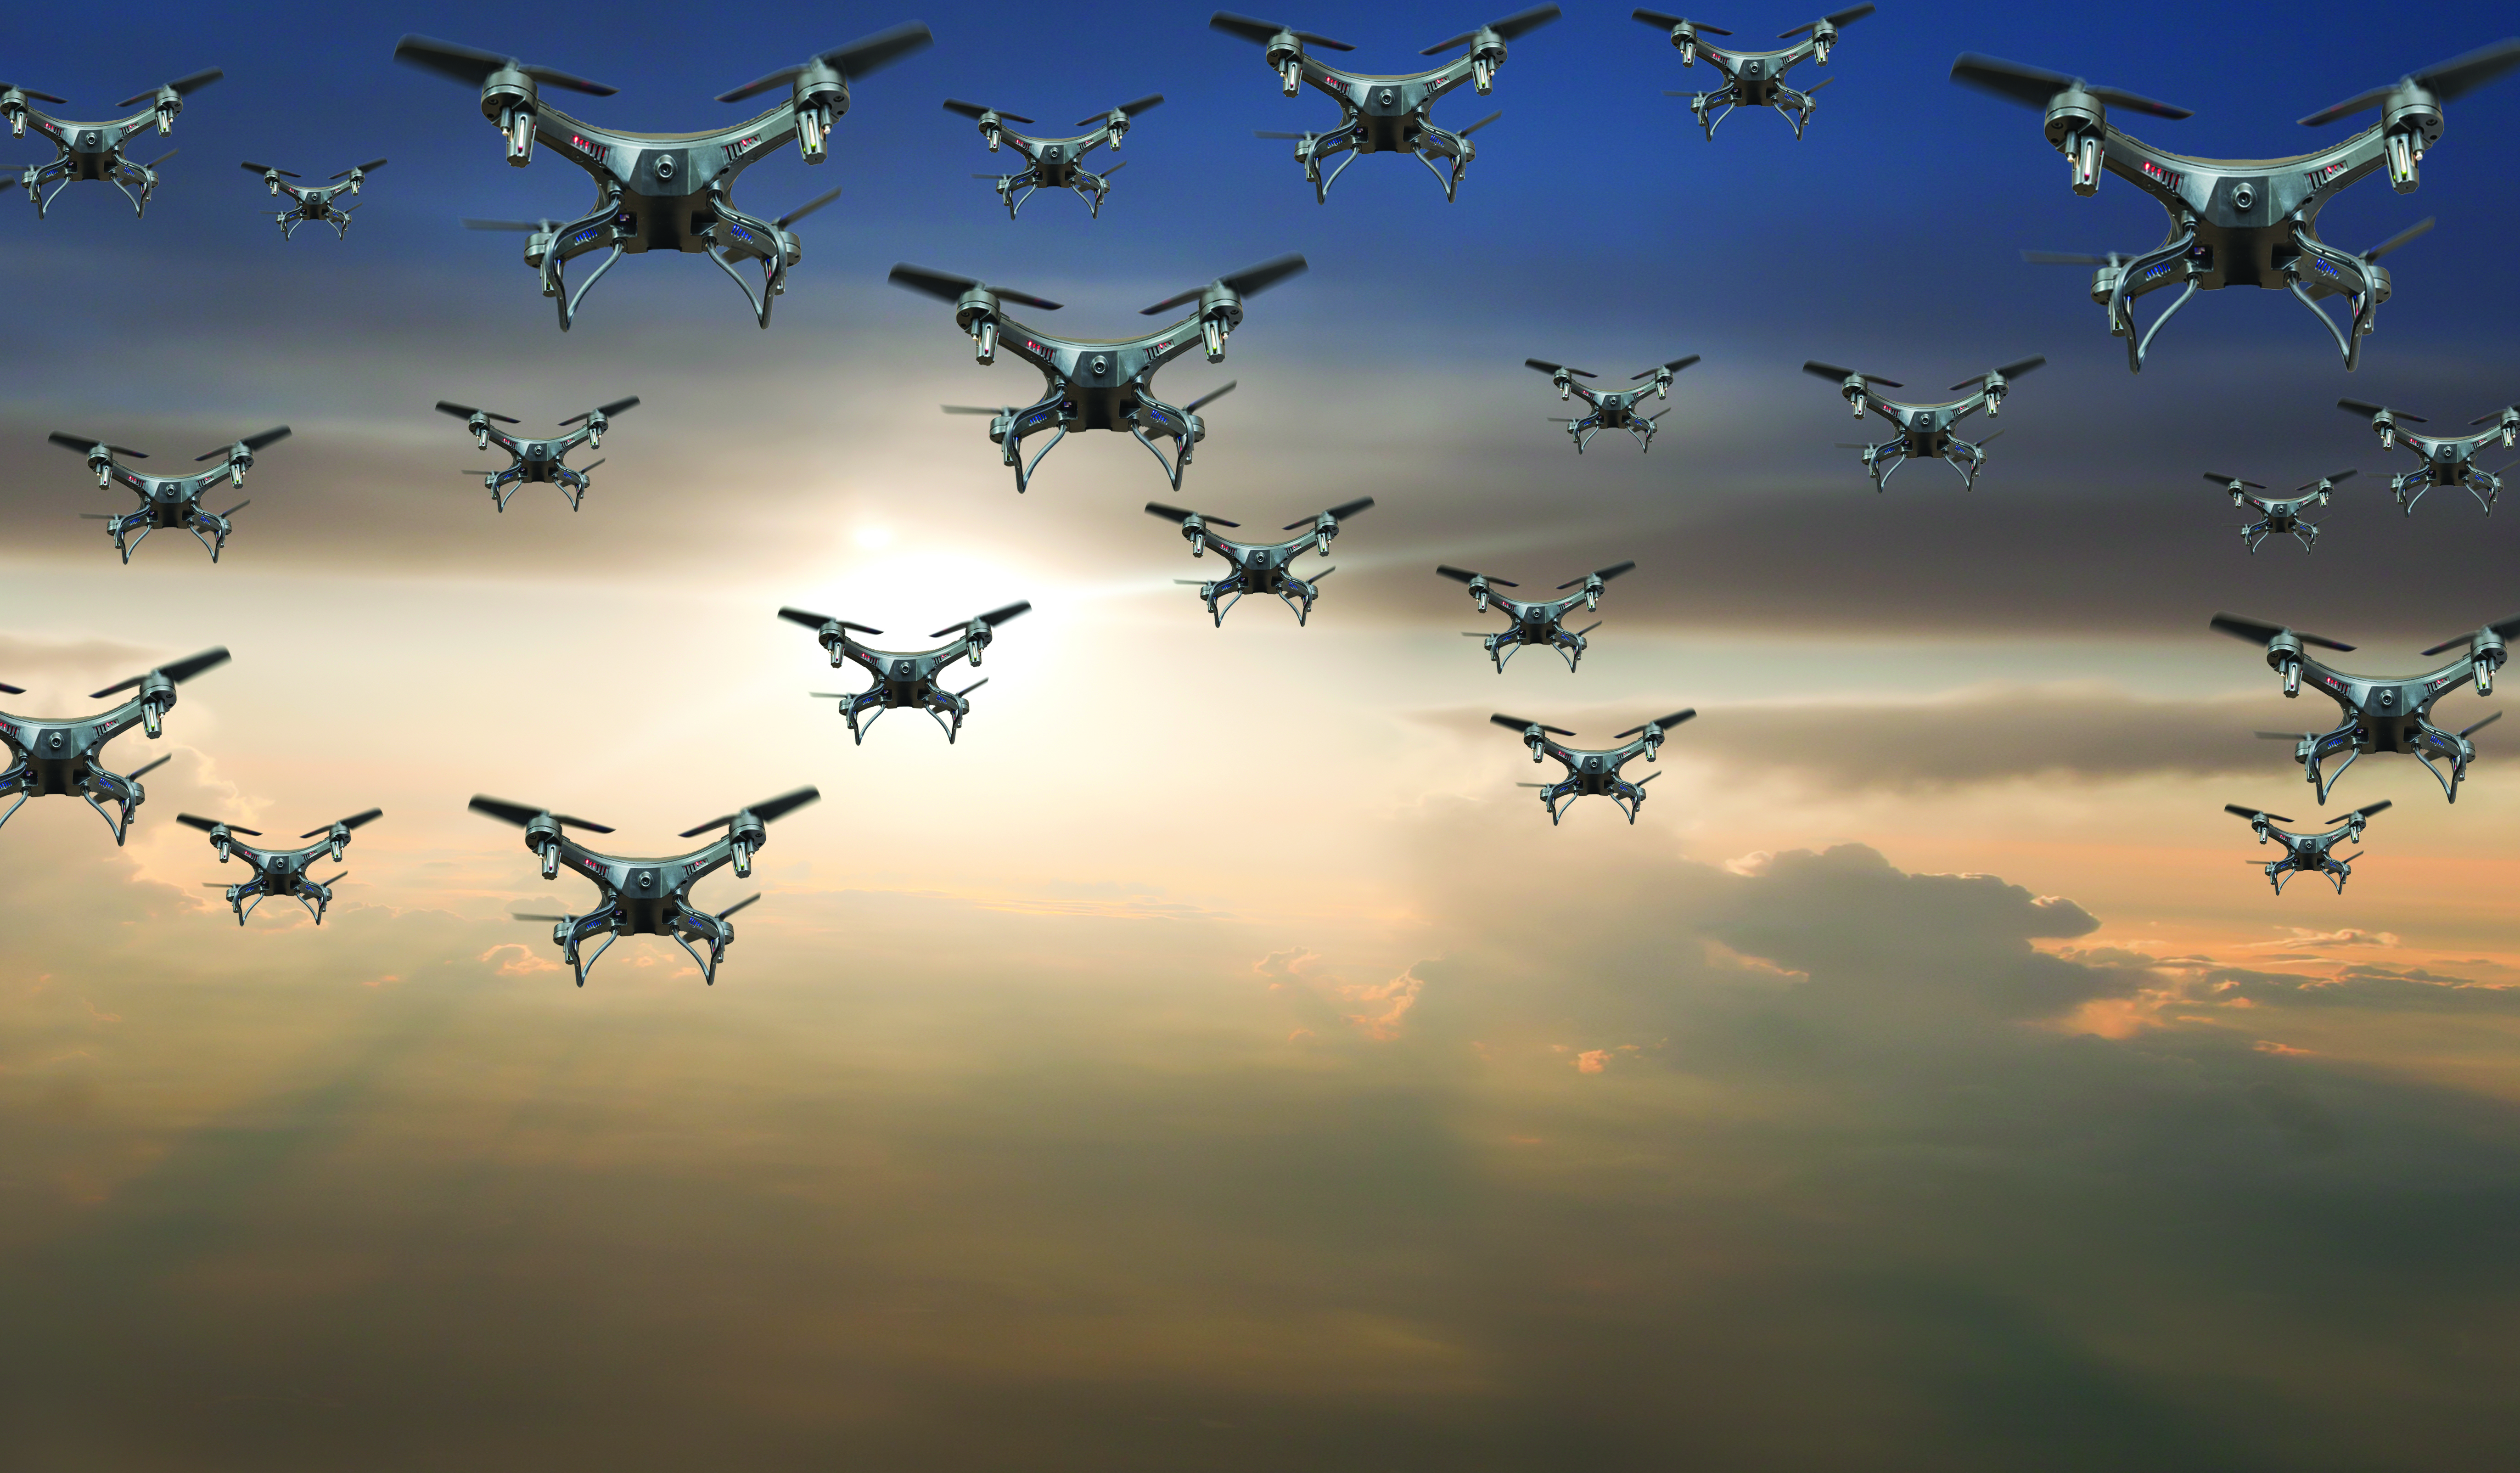 Flock of drones in the sky at sunset